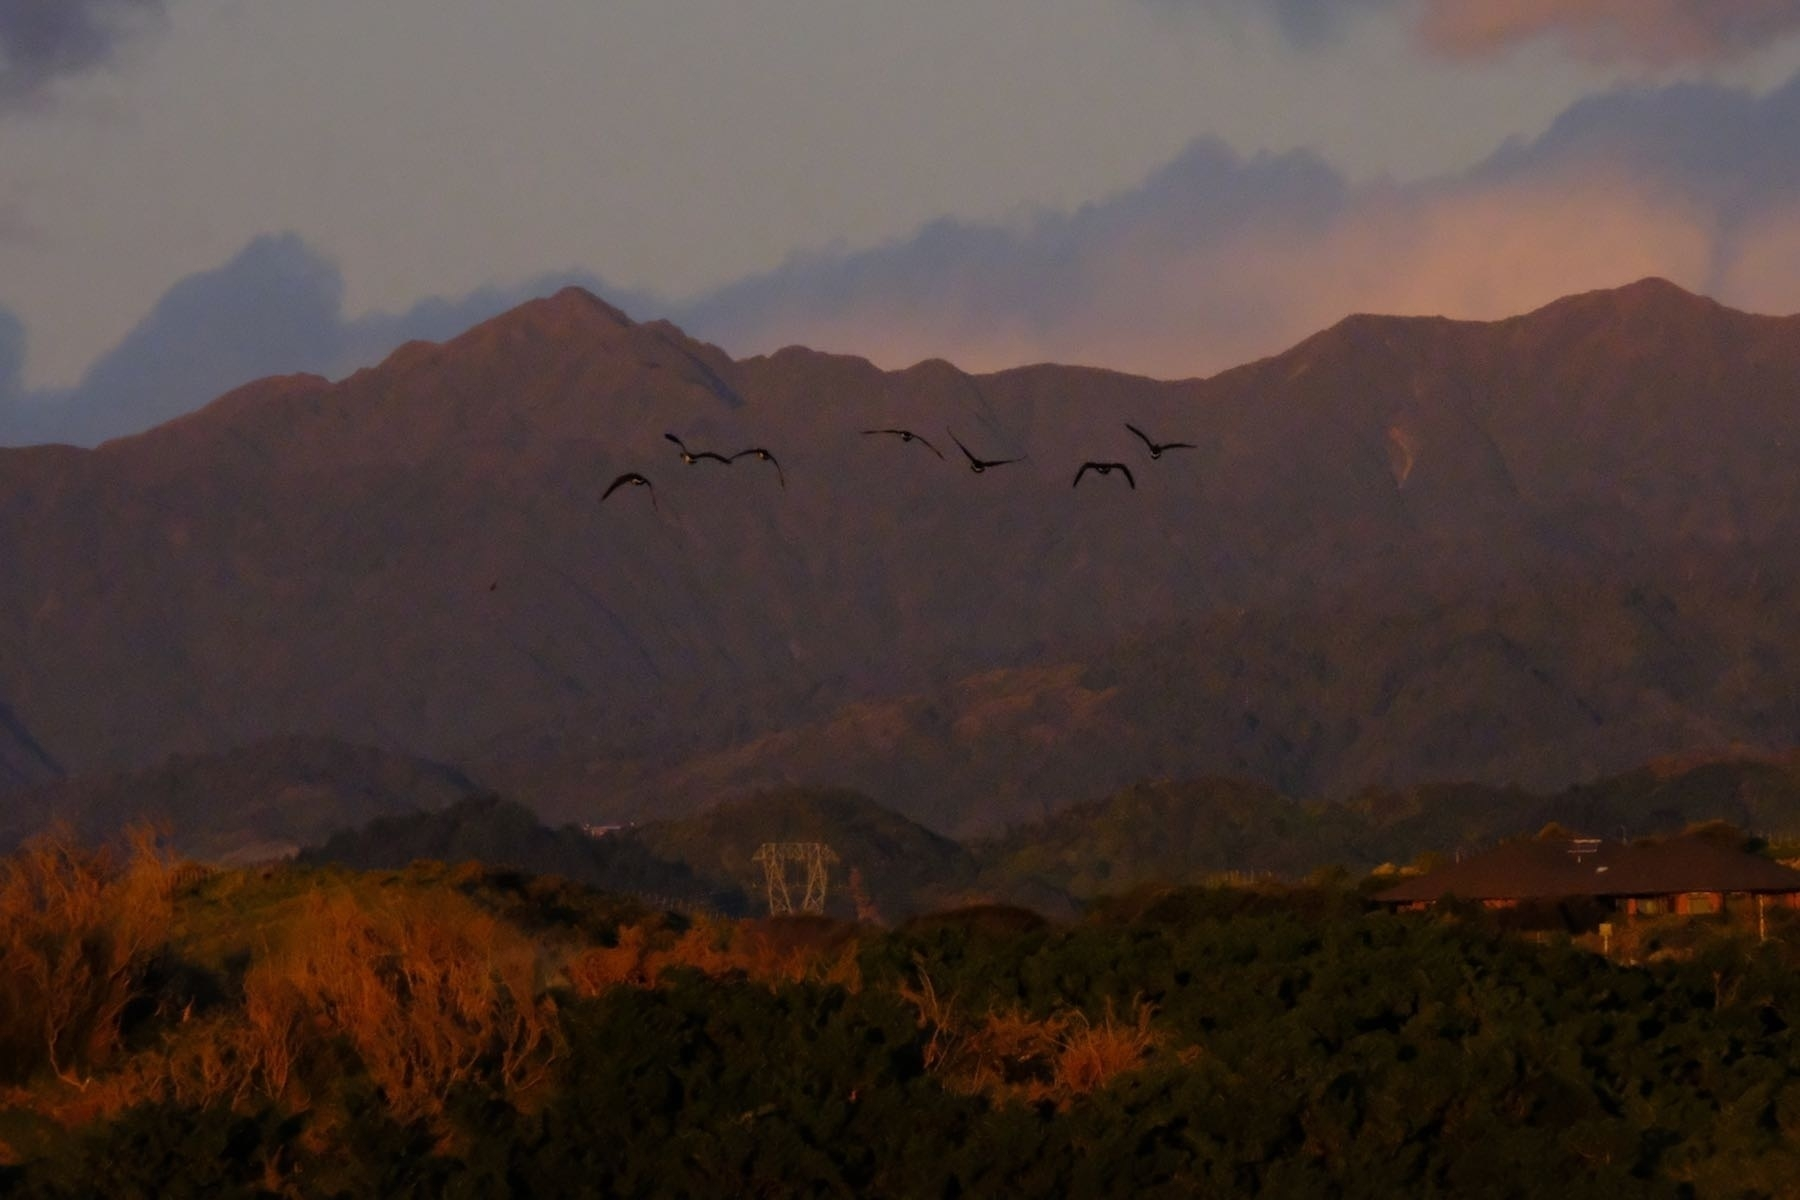 Half a dozen geeese in flight above a red sunlit paddock with red-tinged mountains behind.